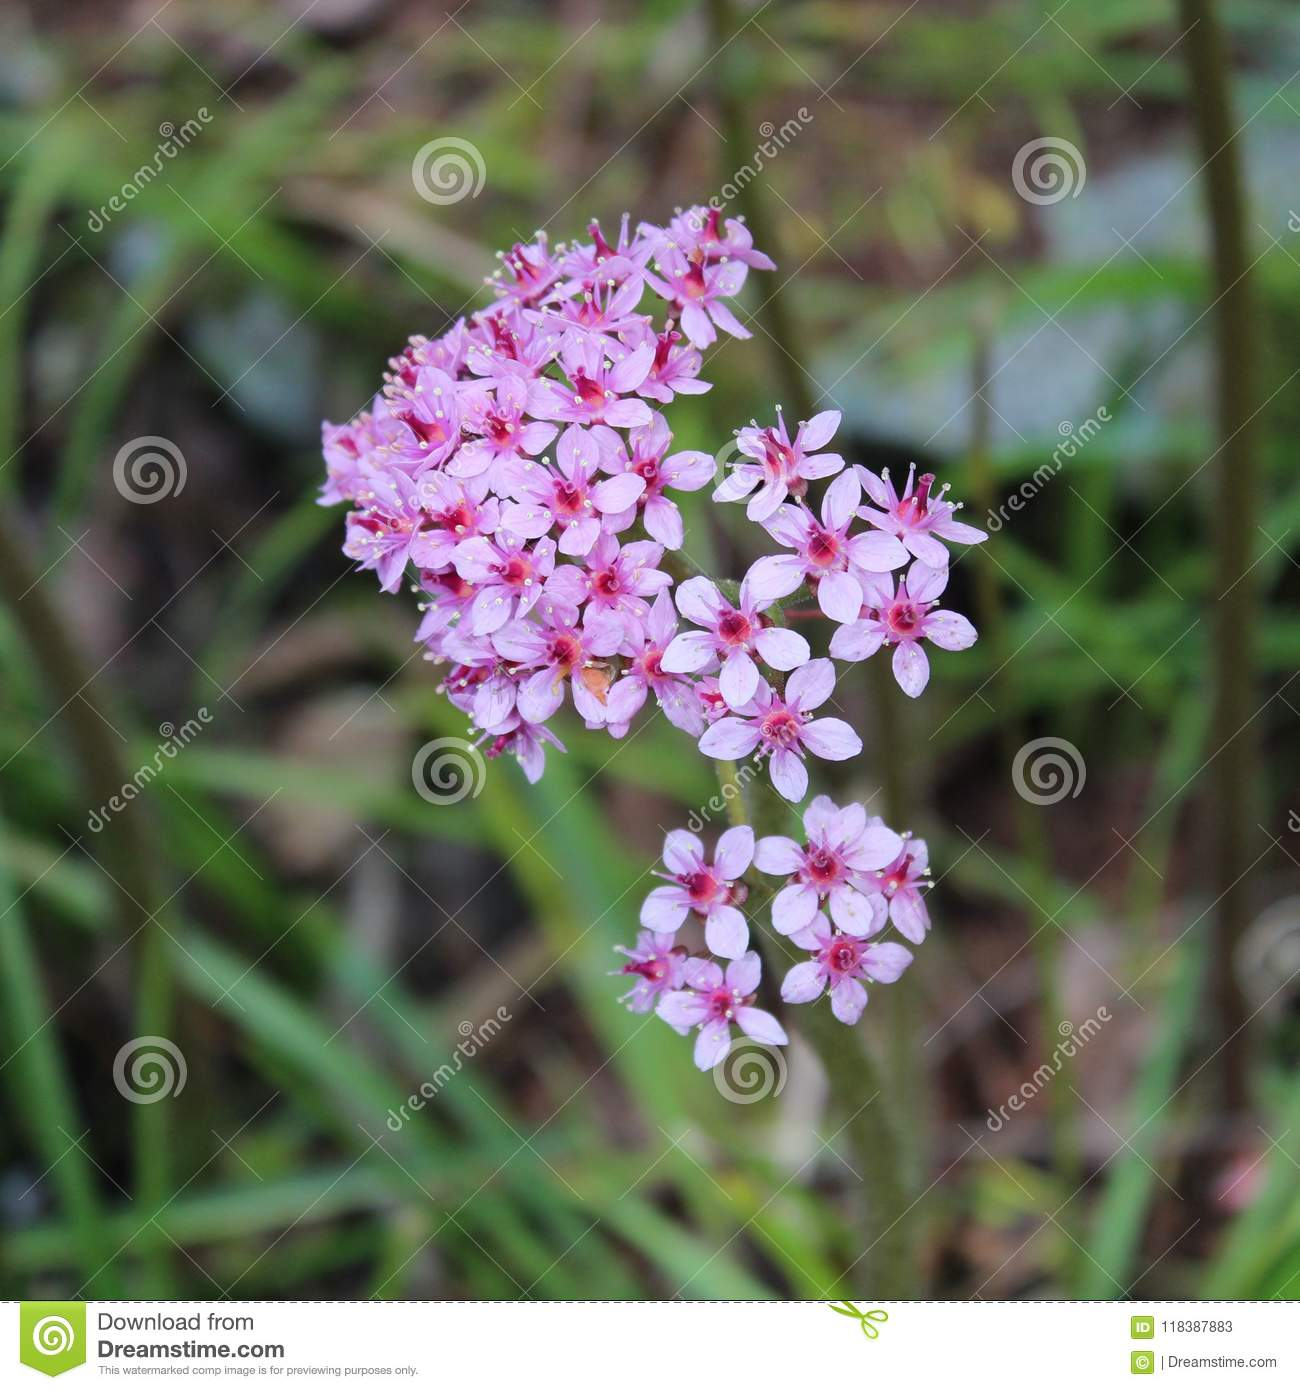 Little beauty in spring stock image image of magic 118387883 little beauty in spring izmirmasajfo